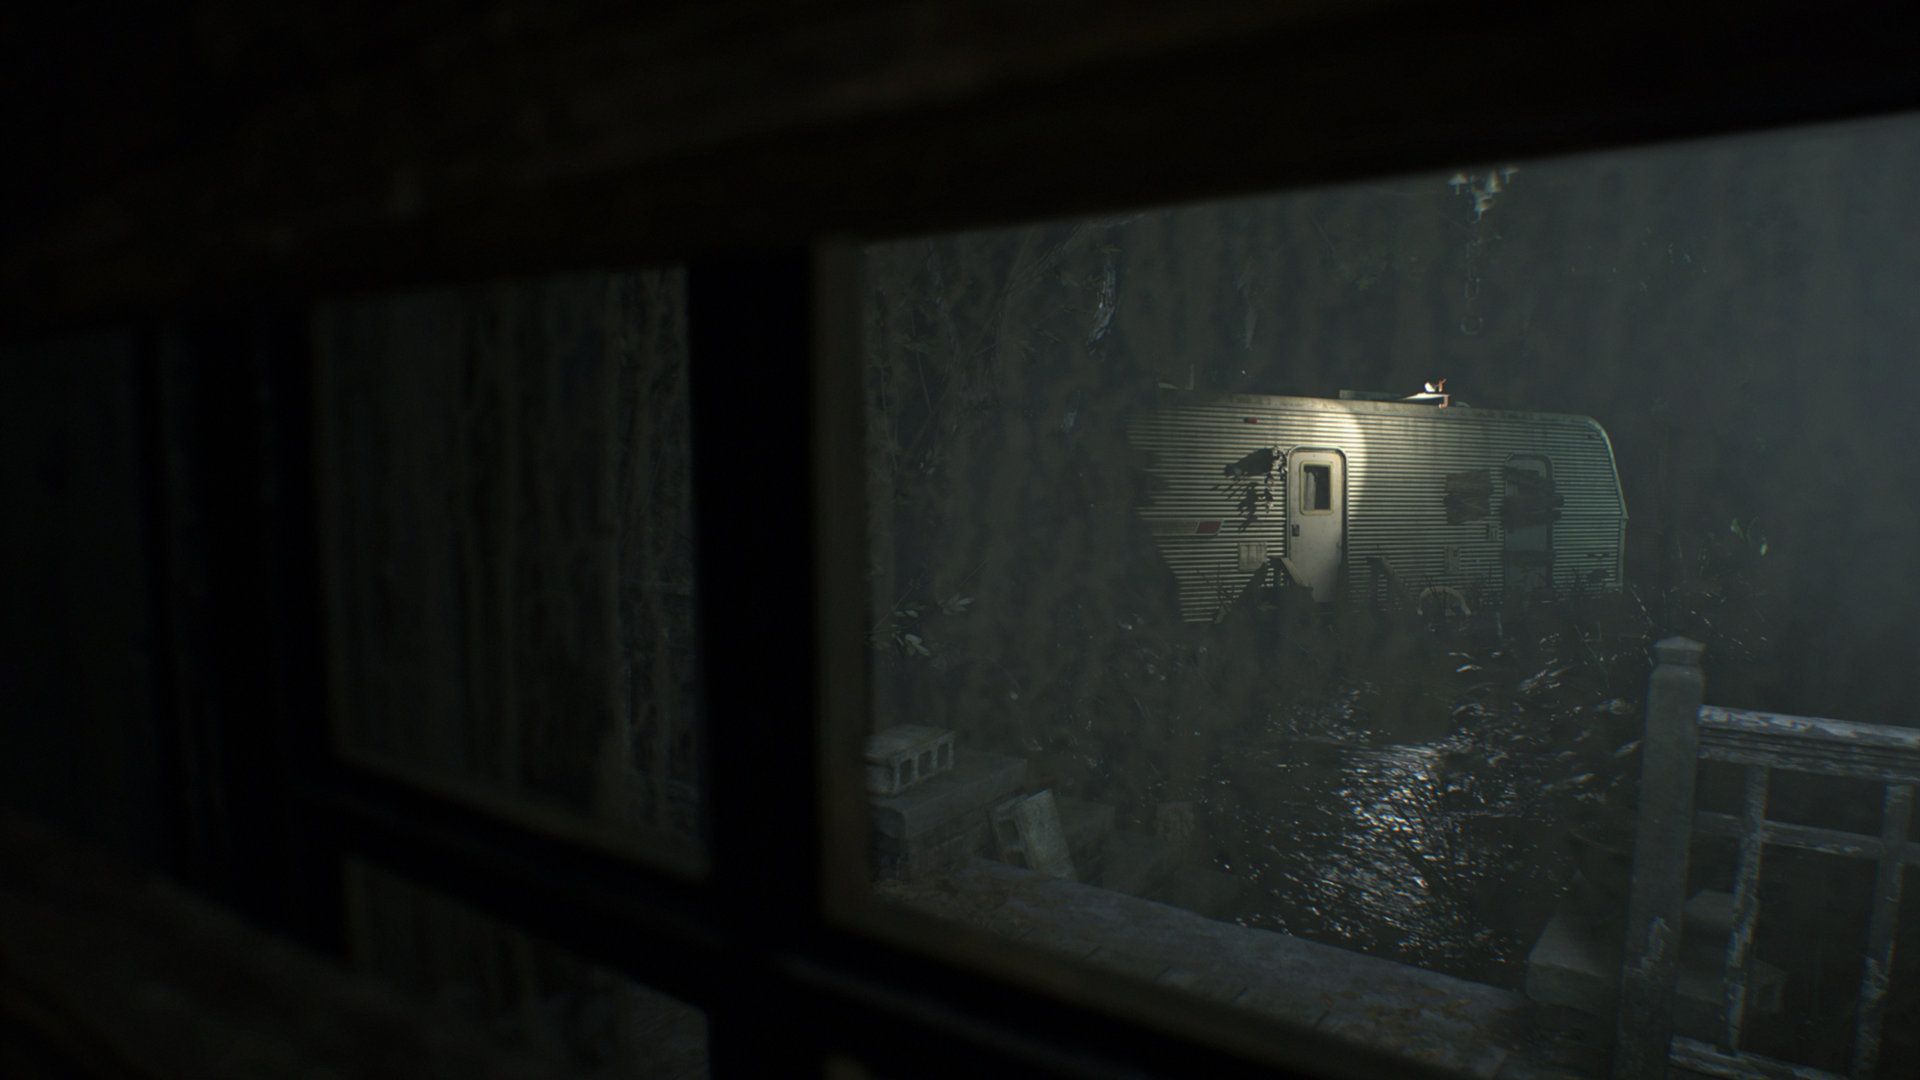 Resident Evil 7's real horror lies in its resonance